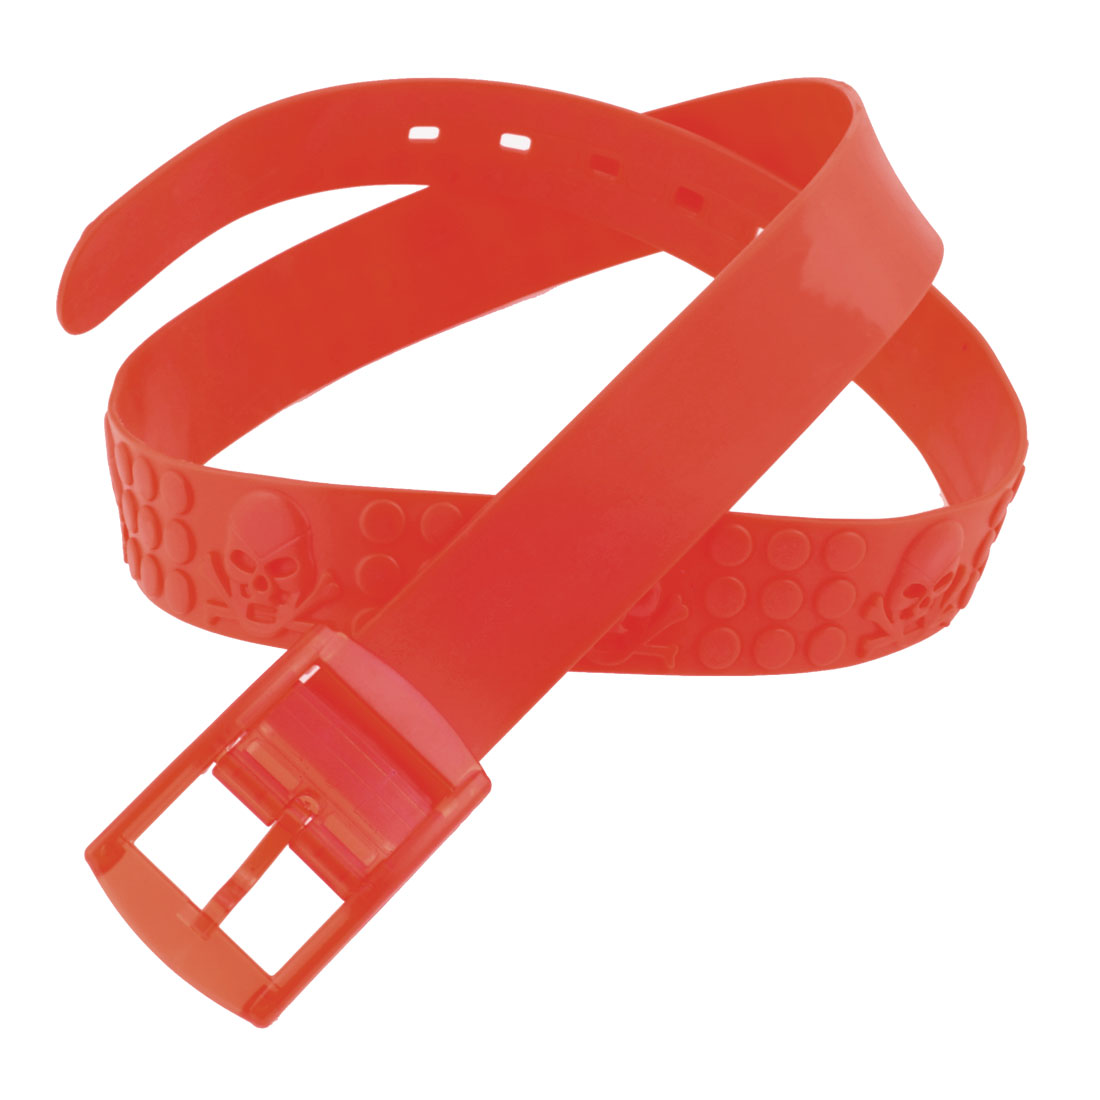 Plastic Rectangle Buckle 3.8cm Width Dots Print Sweet Smell Band Waist Belt Red